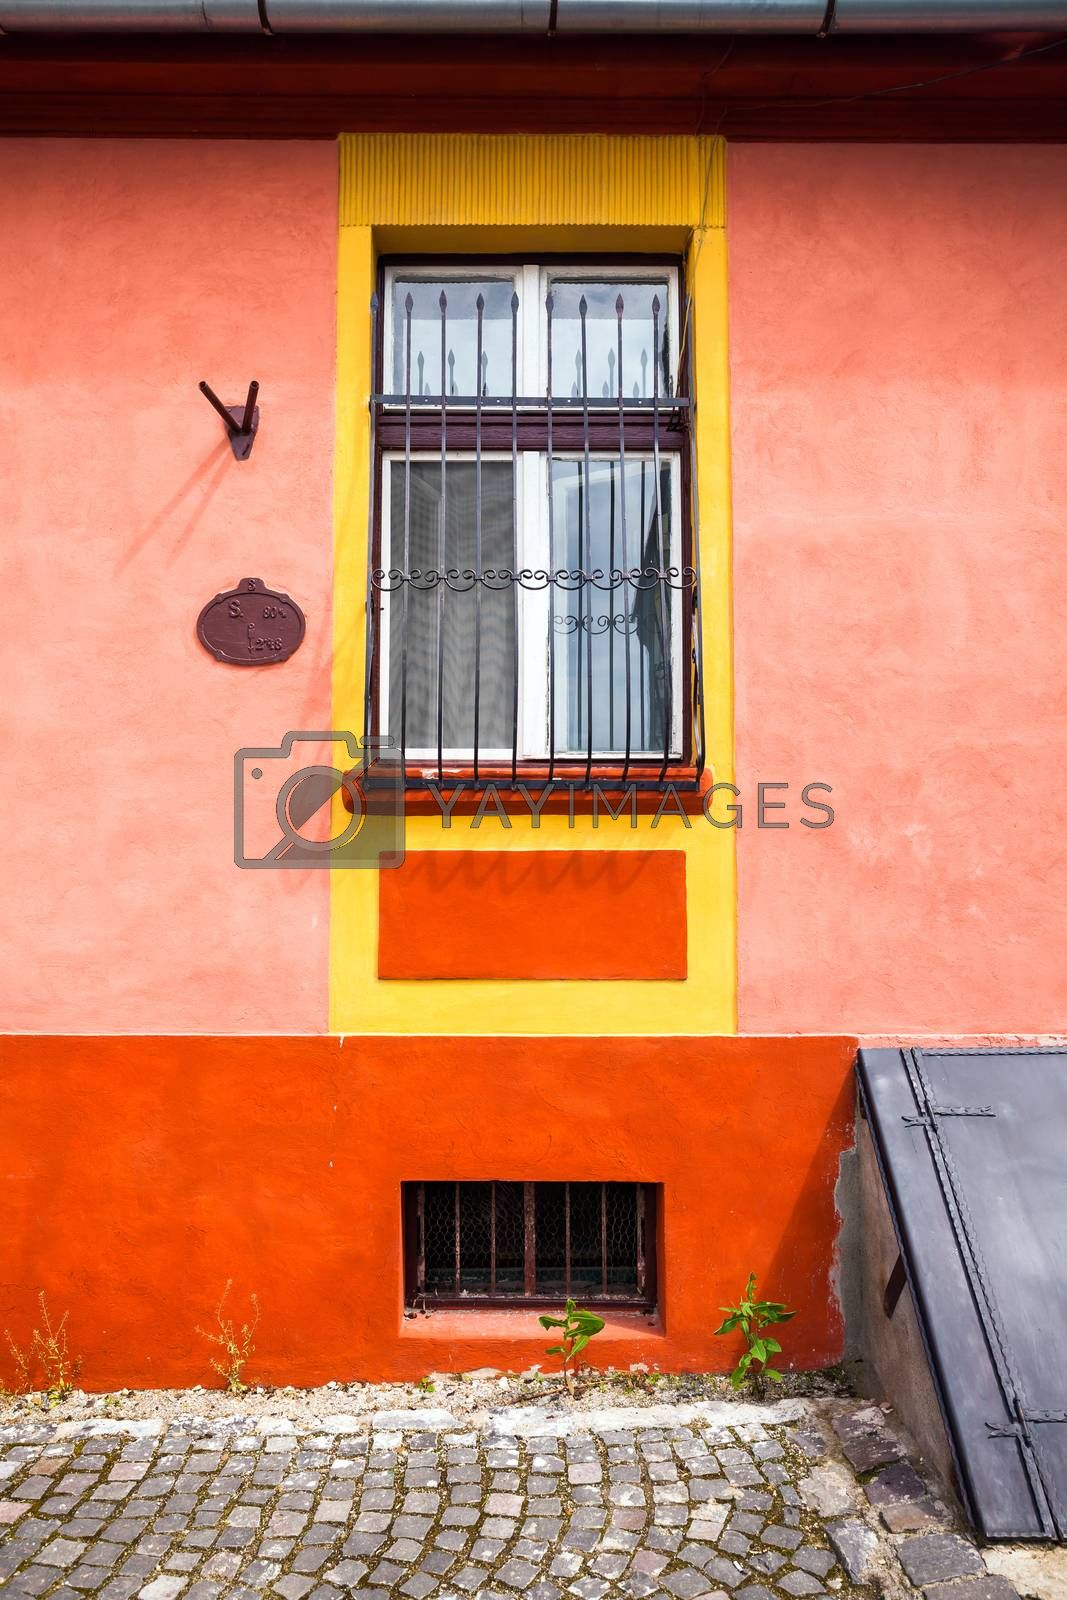 Sighisoara, Romania - June 23, 2013: Orange house facade with wooden window from Sighisoara city old center, Transylvania, Romania